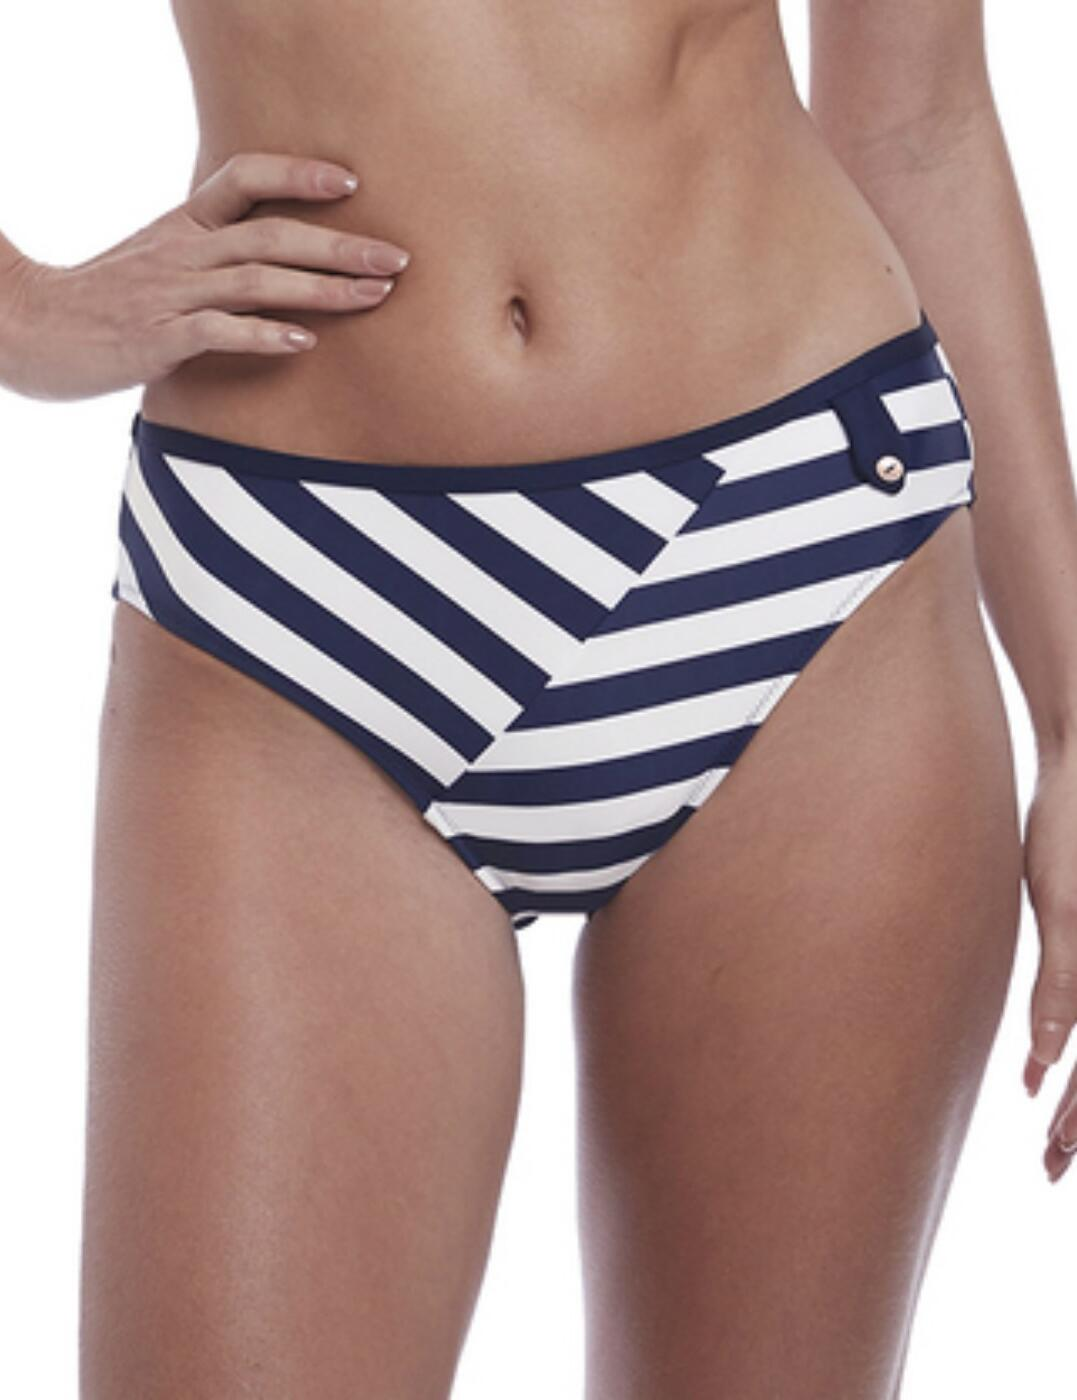 6746 Fantasie Cote D Azur Mid Rise Bikini Brief - 6746 Ink